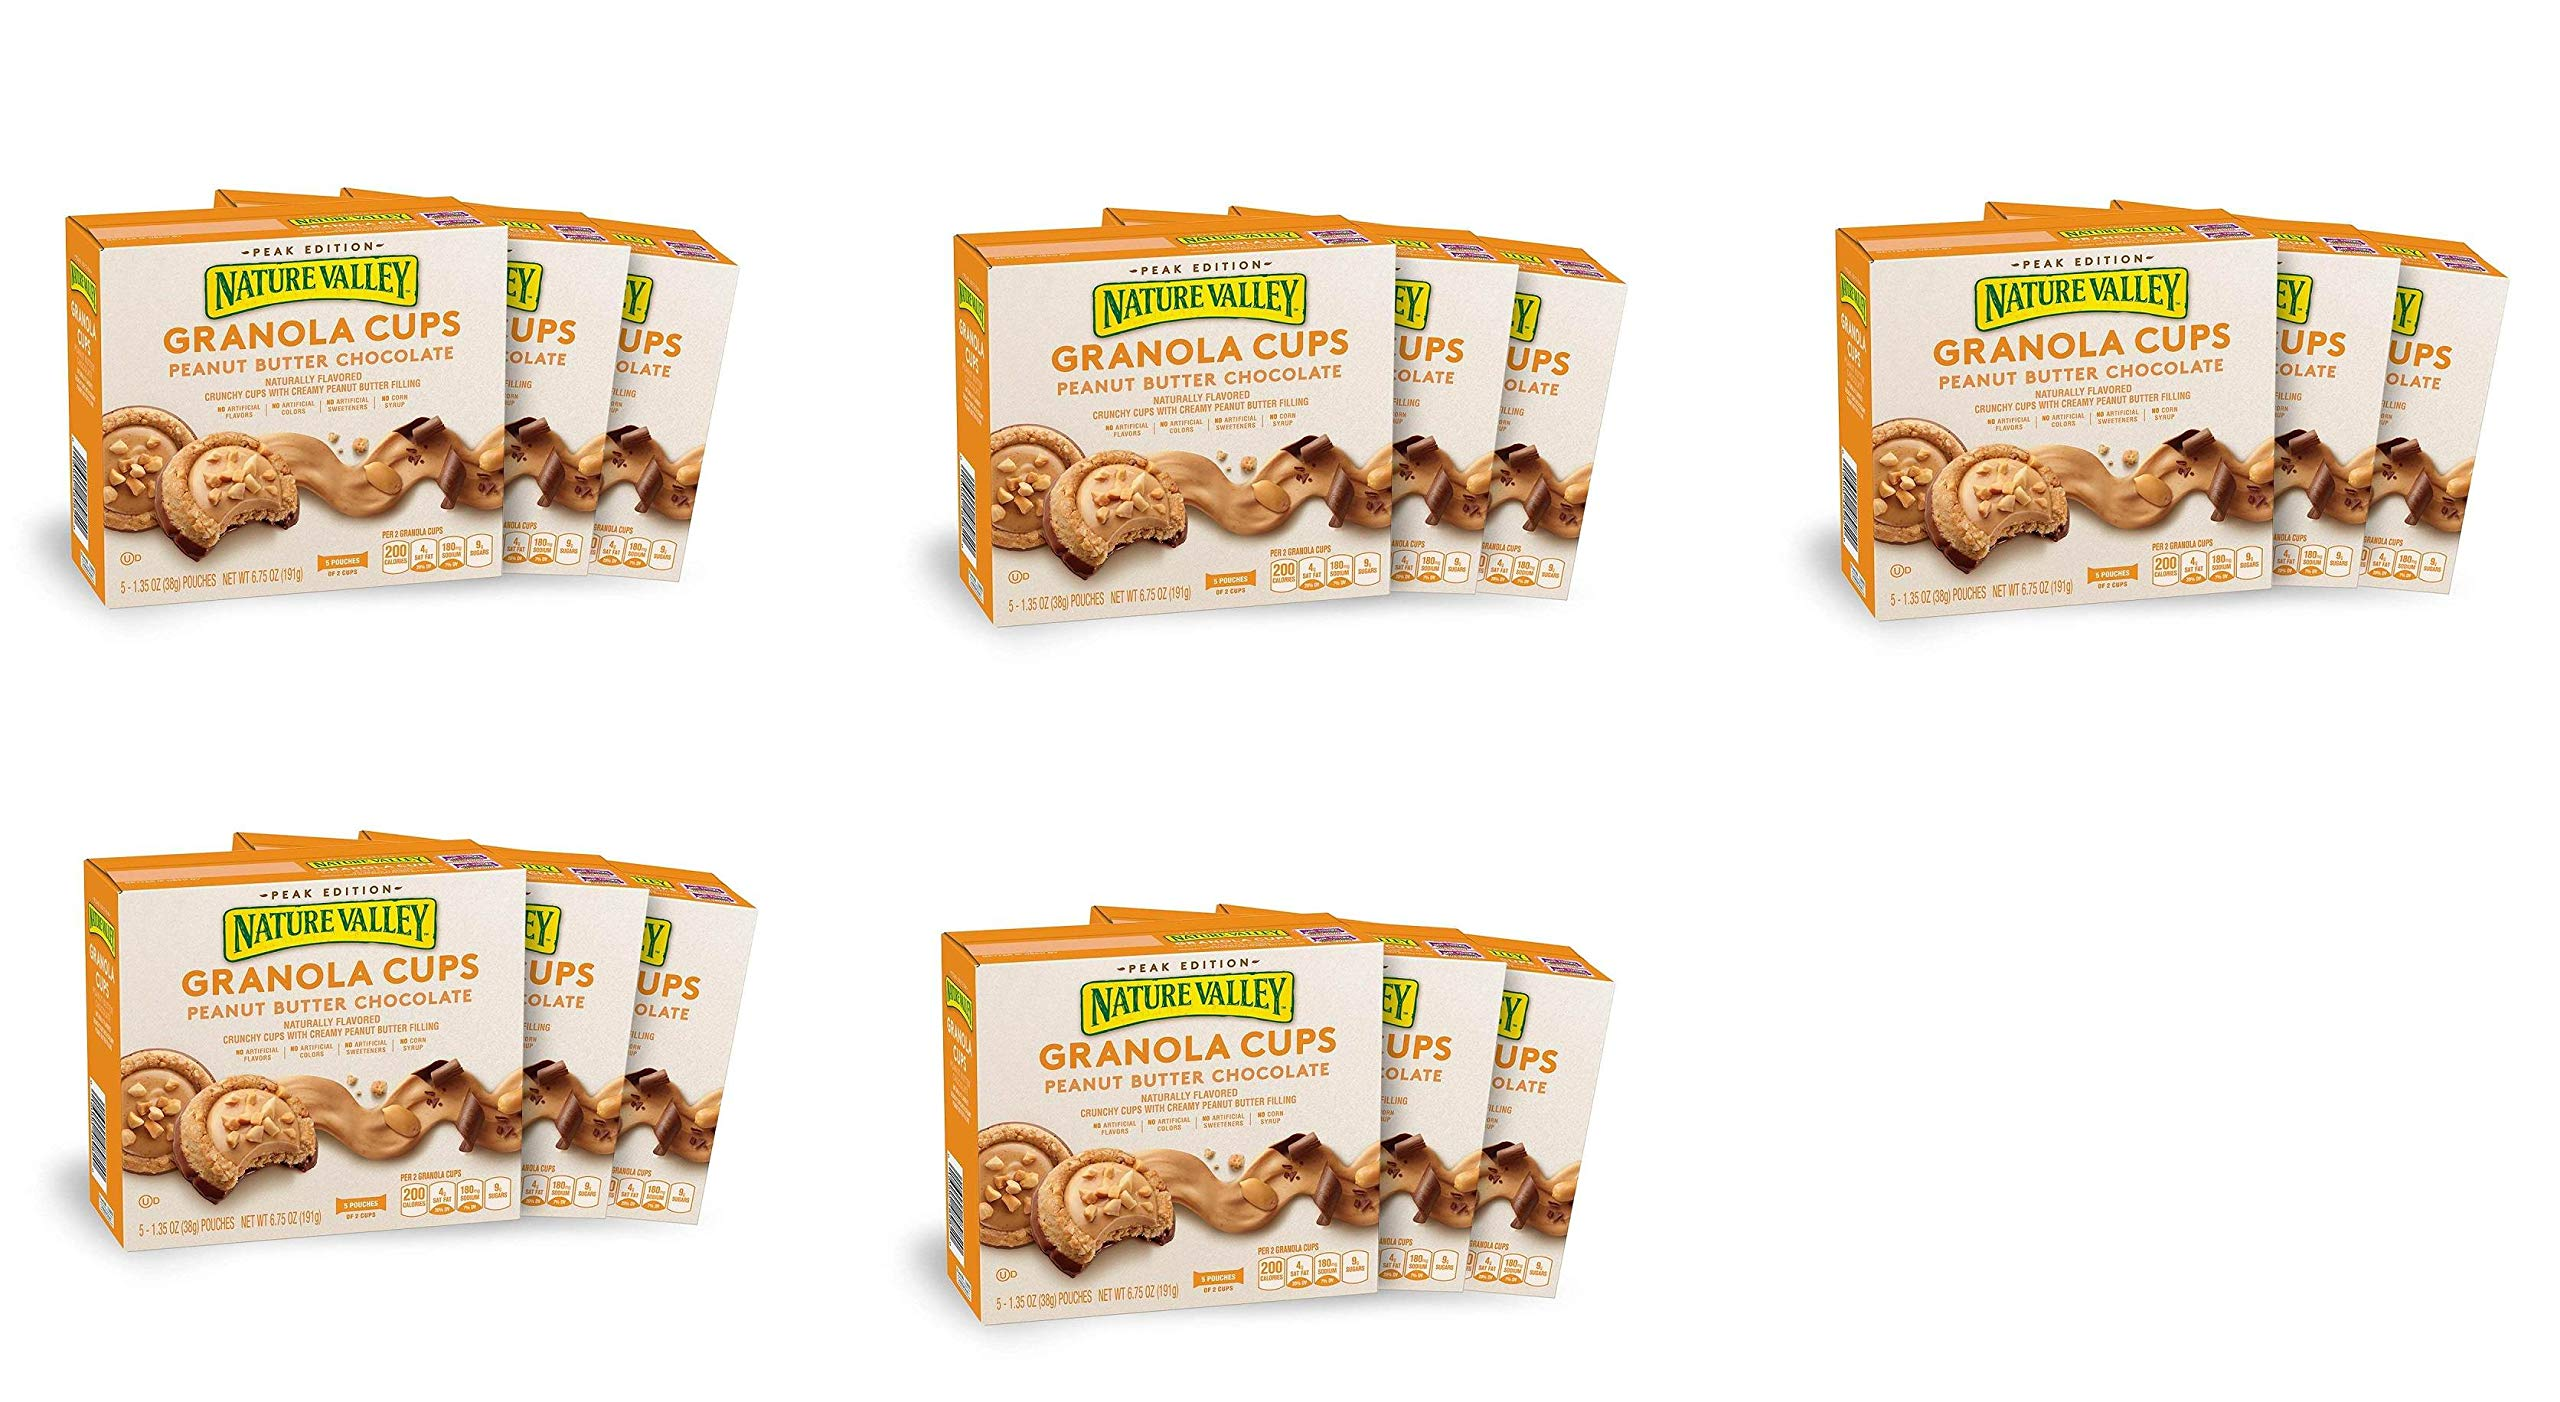 Nature Valley Peak Edition Granola Cups, Peanut Butter, 5 Pouches, 1.2 oz, (15 Boxes)